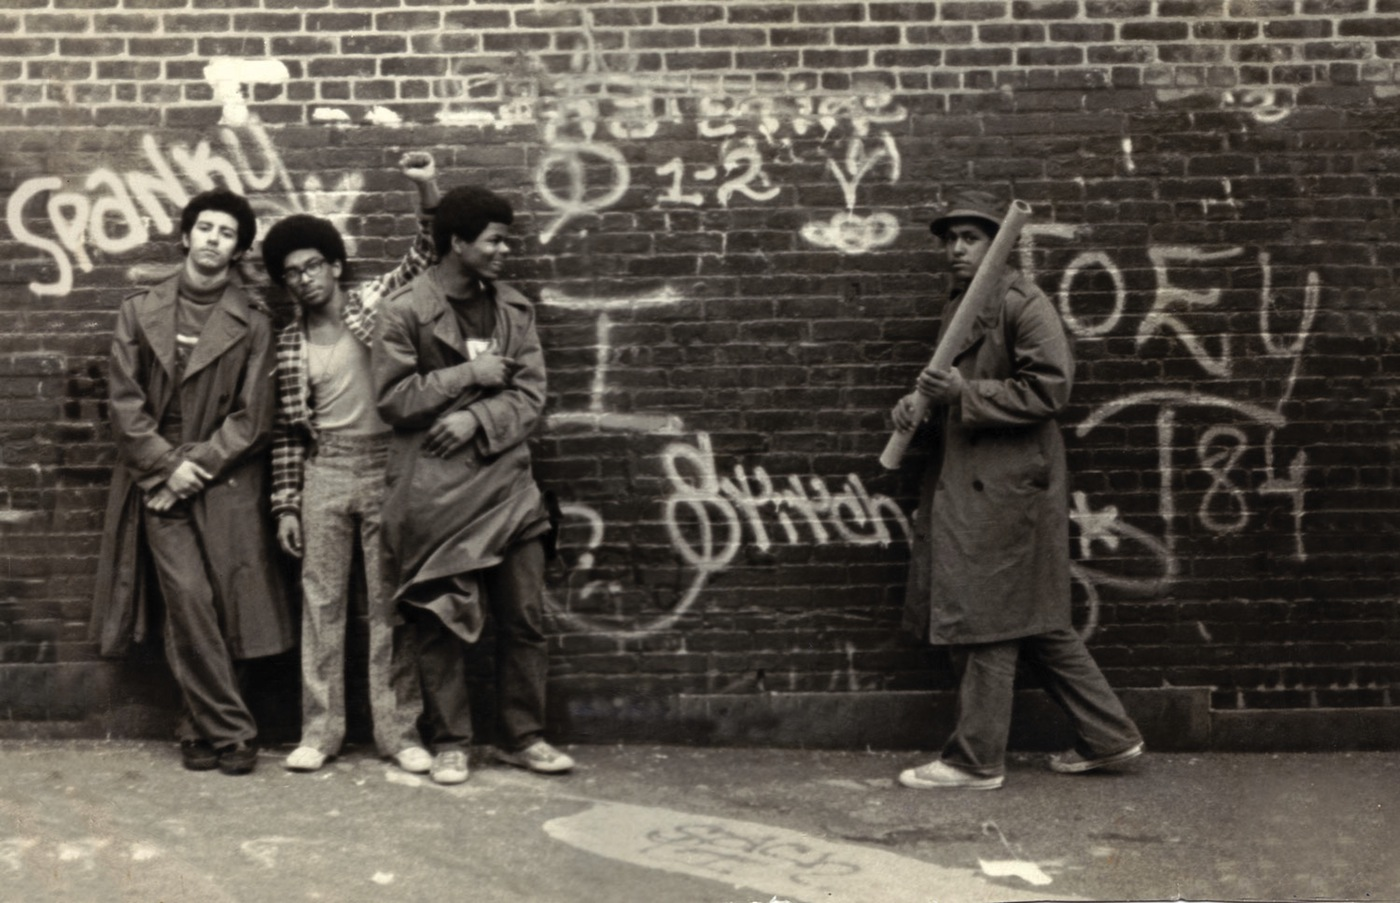 """SNAKE 1, STATIC 5, FLASH 191, and STITCH 1 at the P.S. 189 school yard in Washington Heights, New York. Circa 1973. From the film """"Wall Writers (Photo courtesy SNAKE 1, via wallwritersthemovie.com)"""